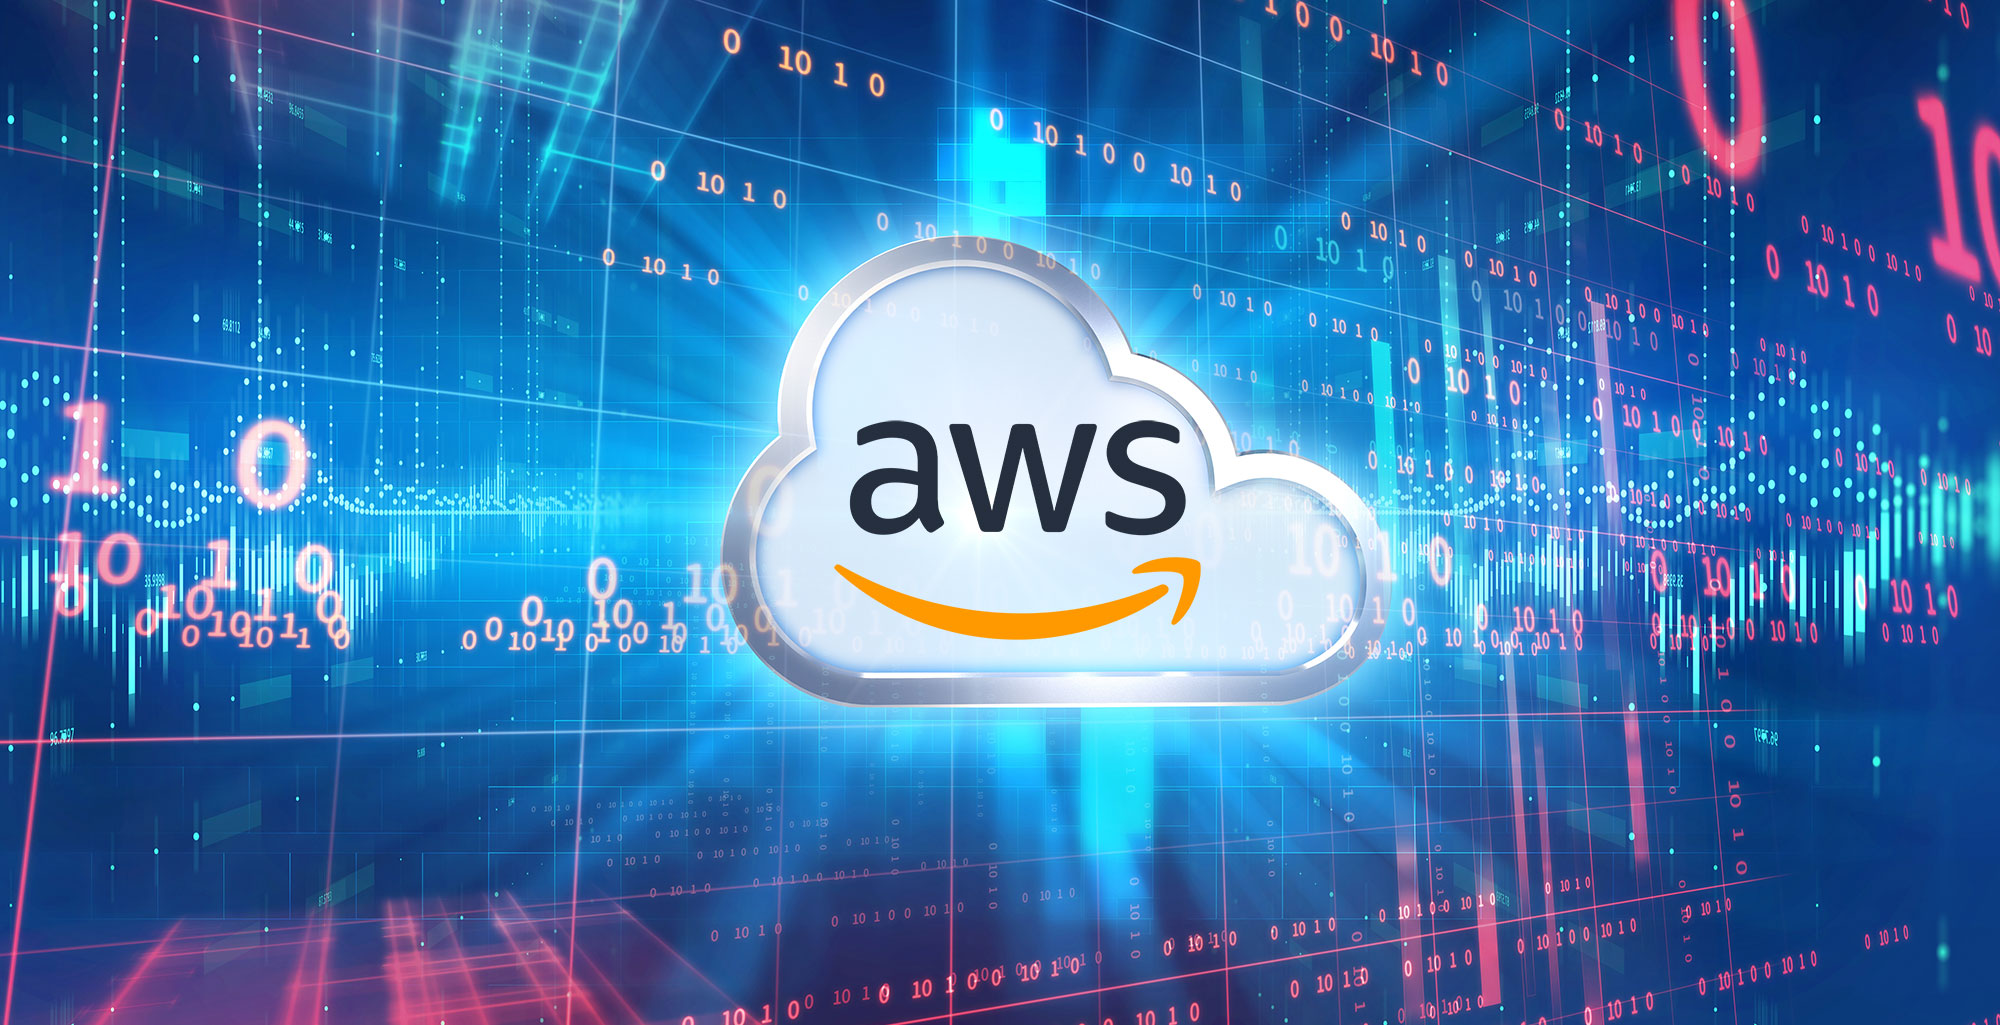 AWS-powered Artificial Intelligence logo on a digital screen of numbers